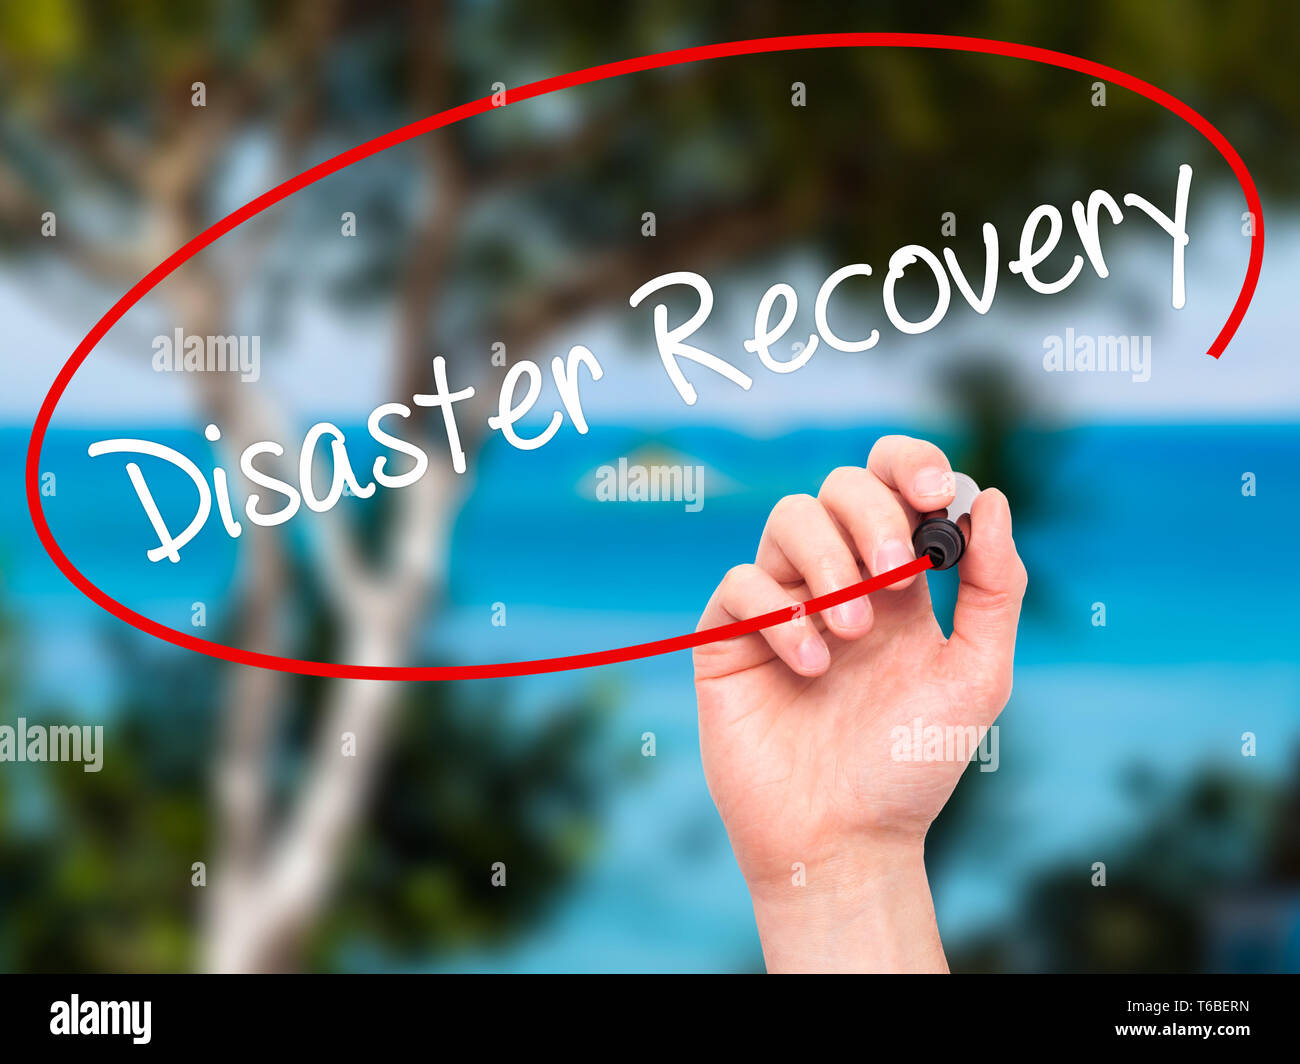 Man Hand writing Disaster Recovery with black marker on visual screen - Stock Image